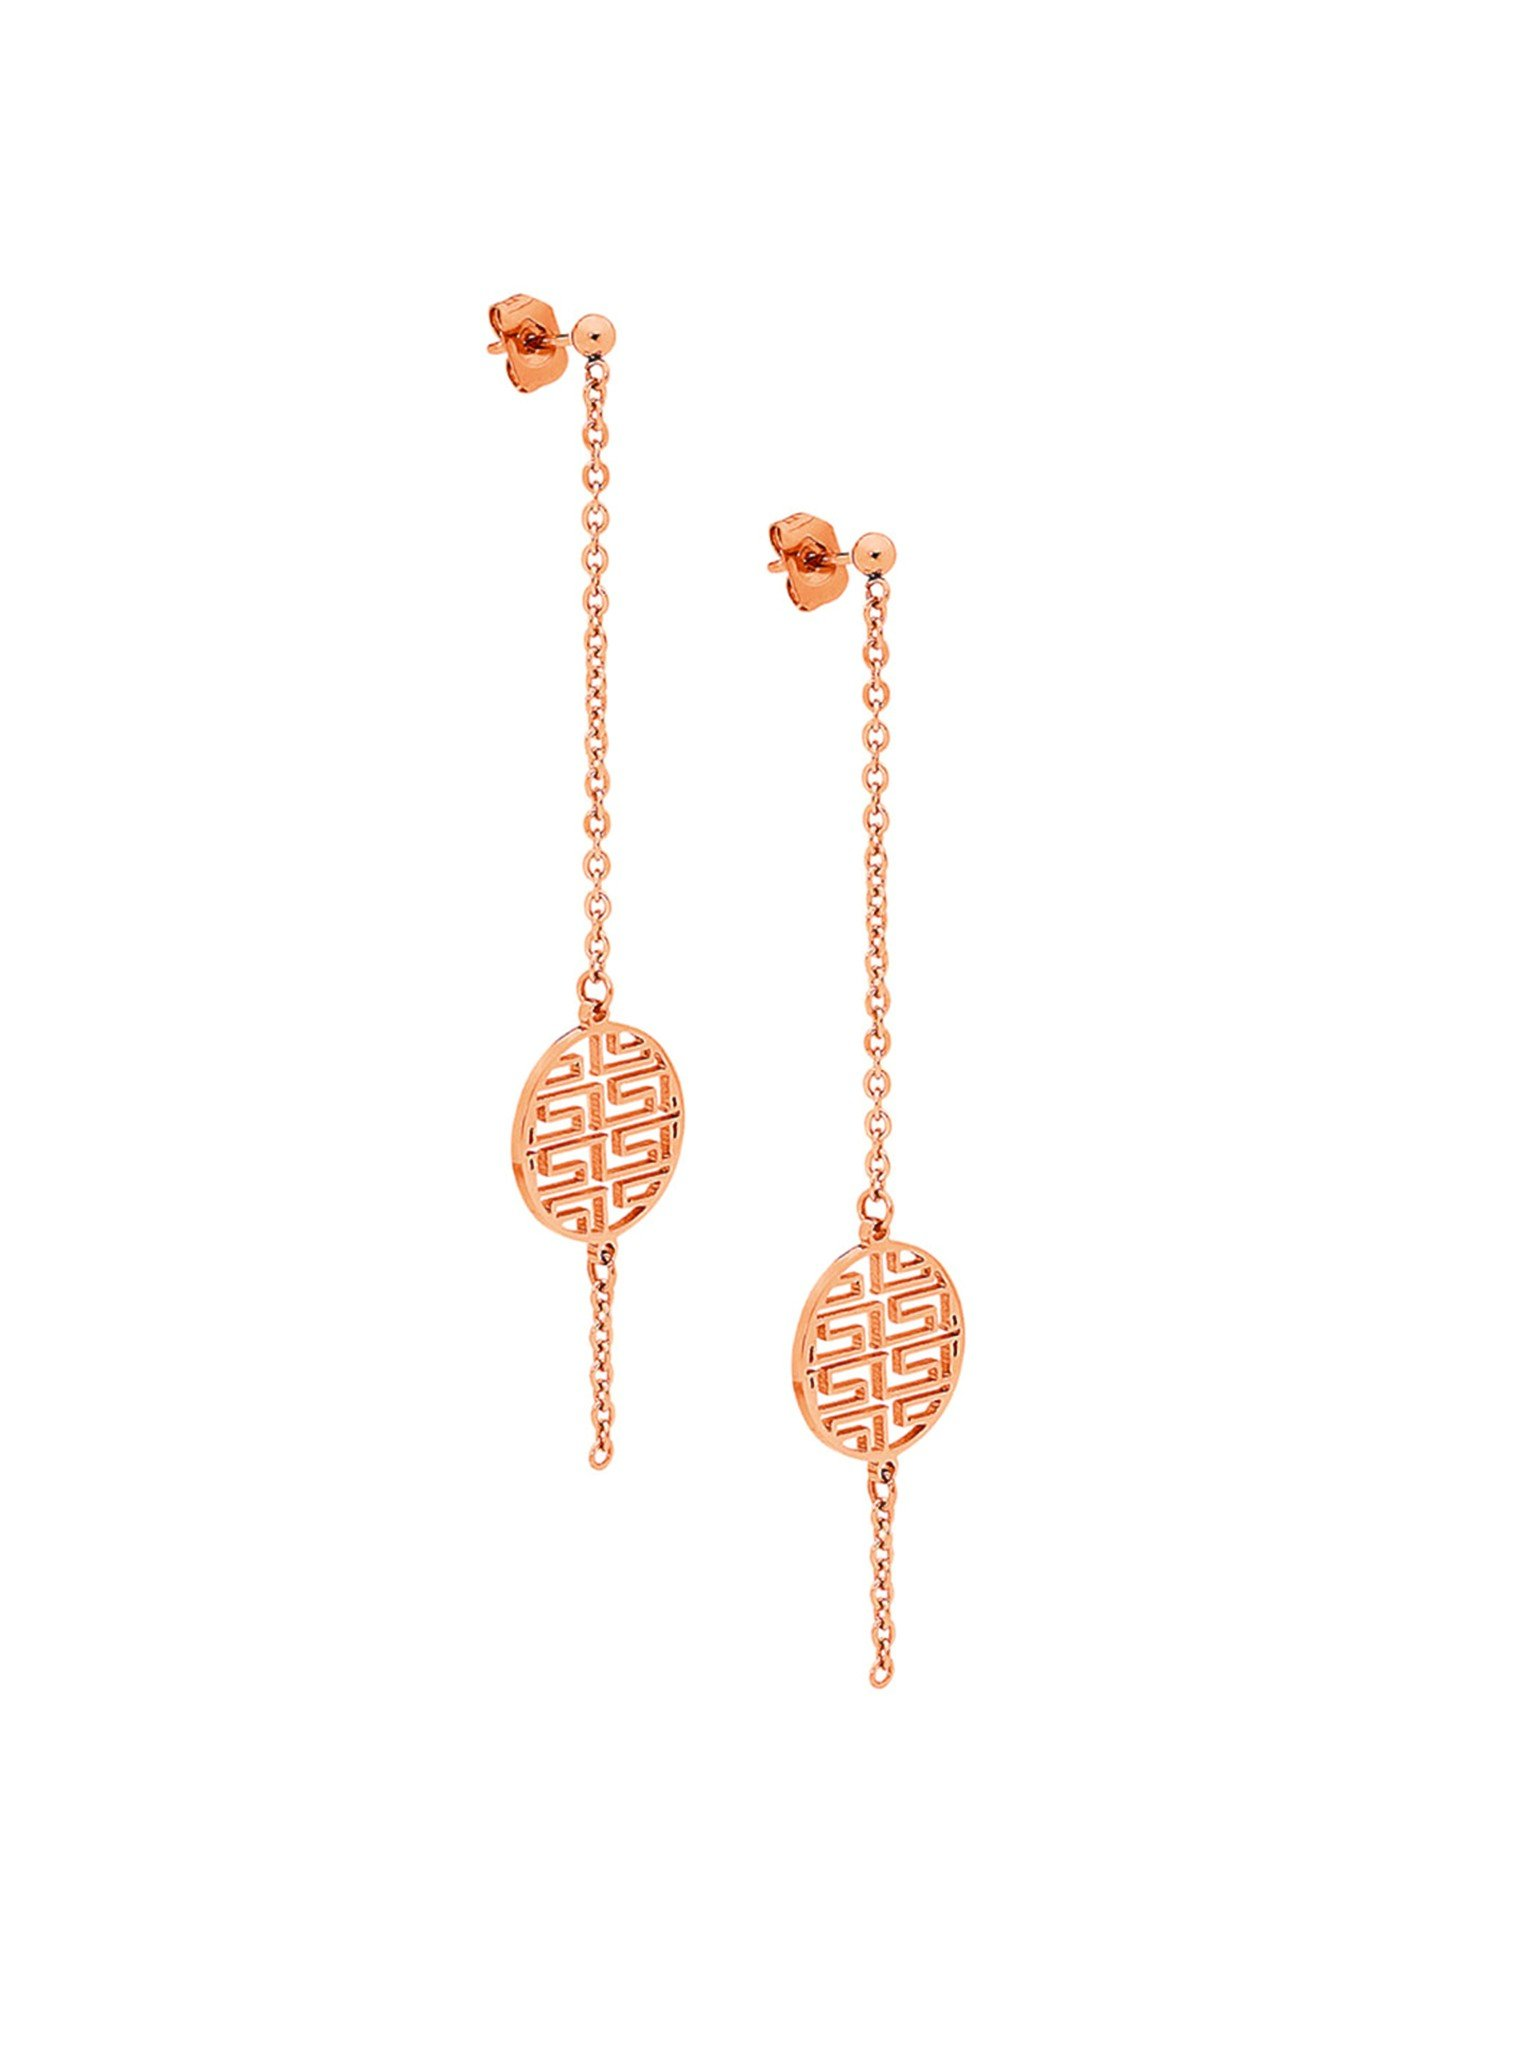 Fortune Rose Gold Earrings in Stainless Steel